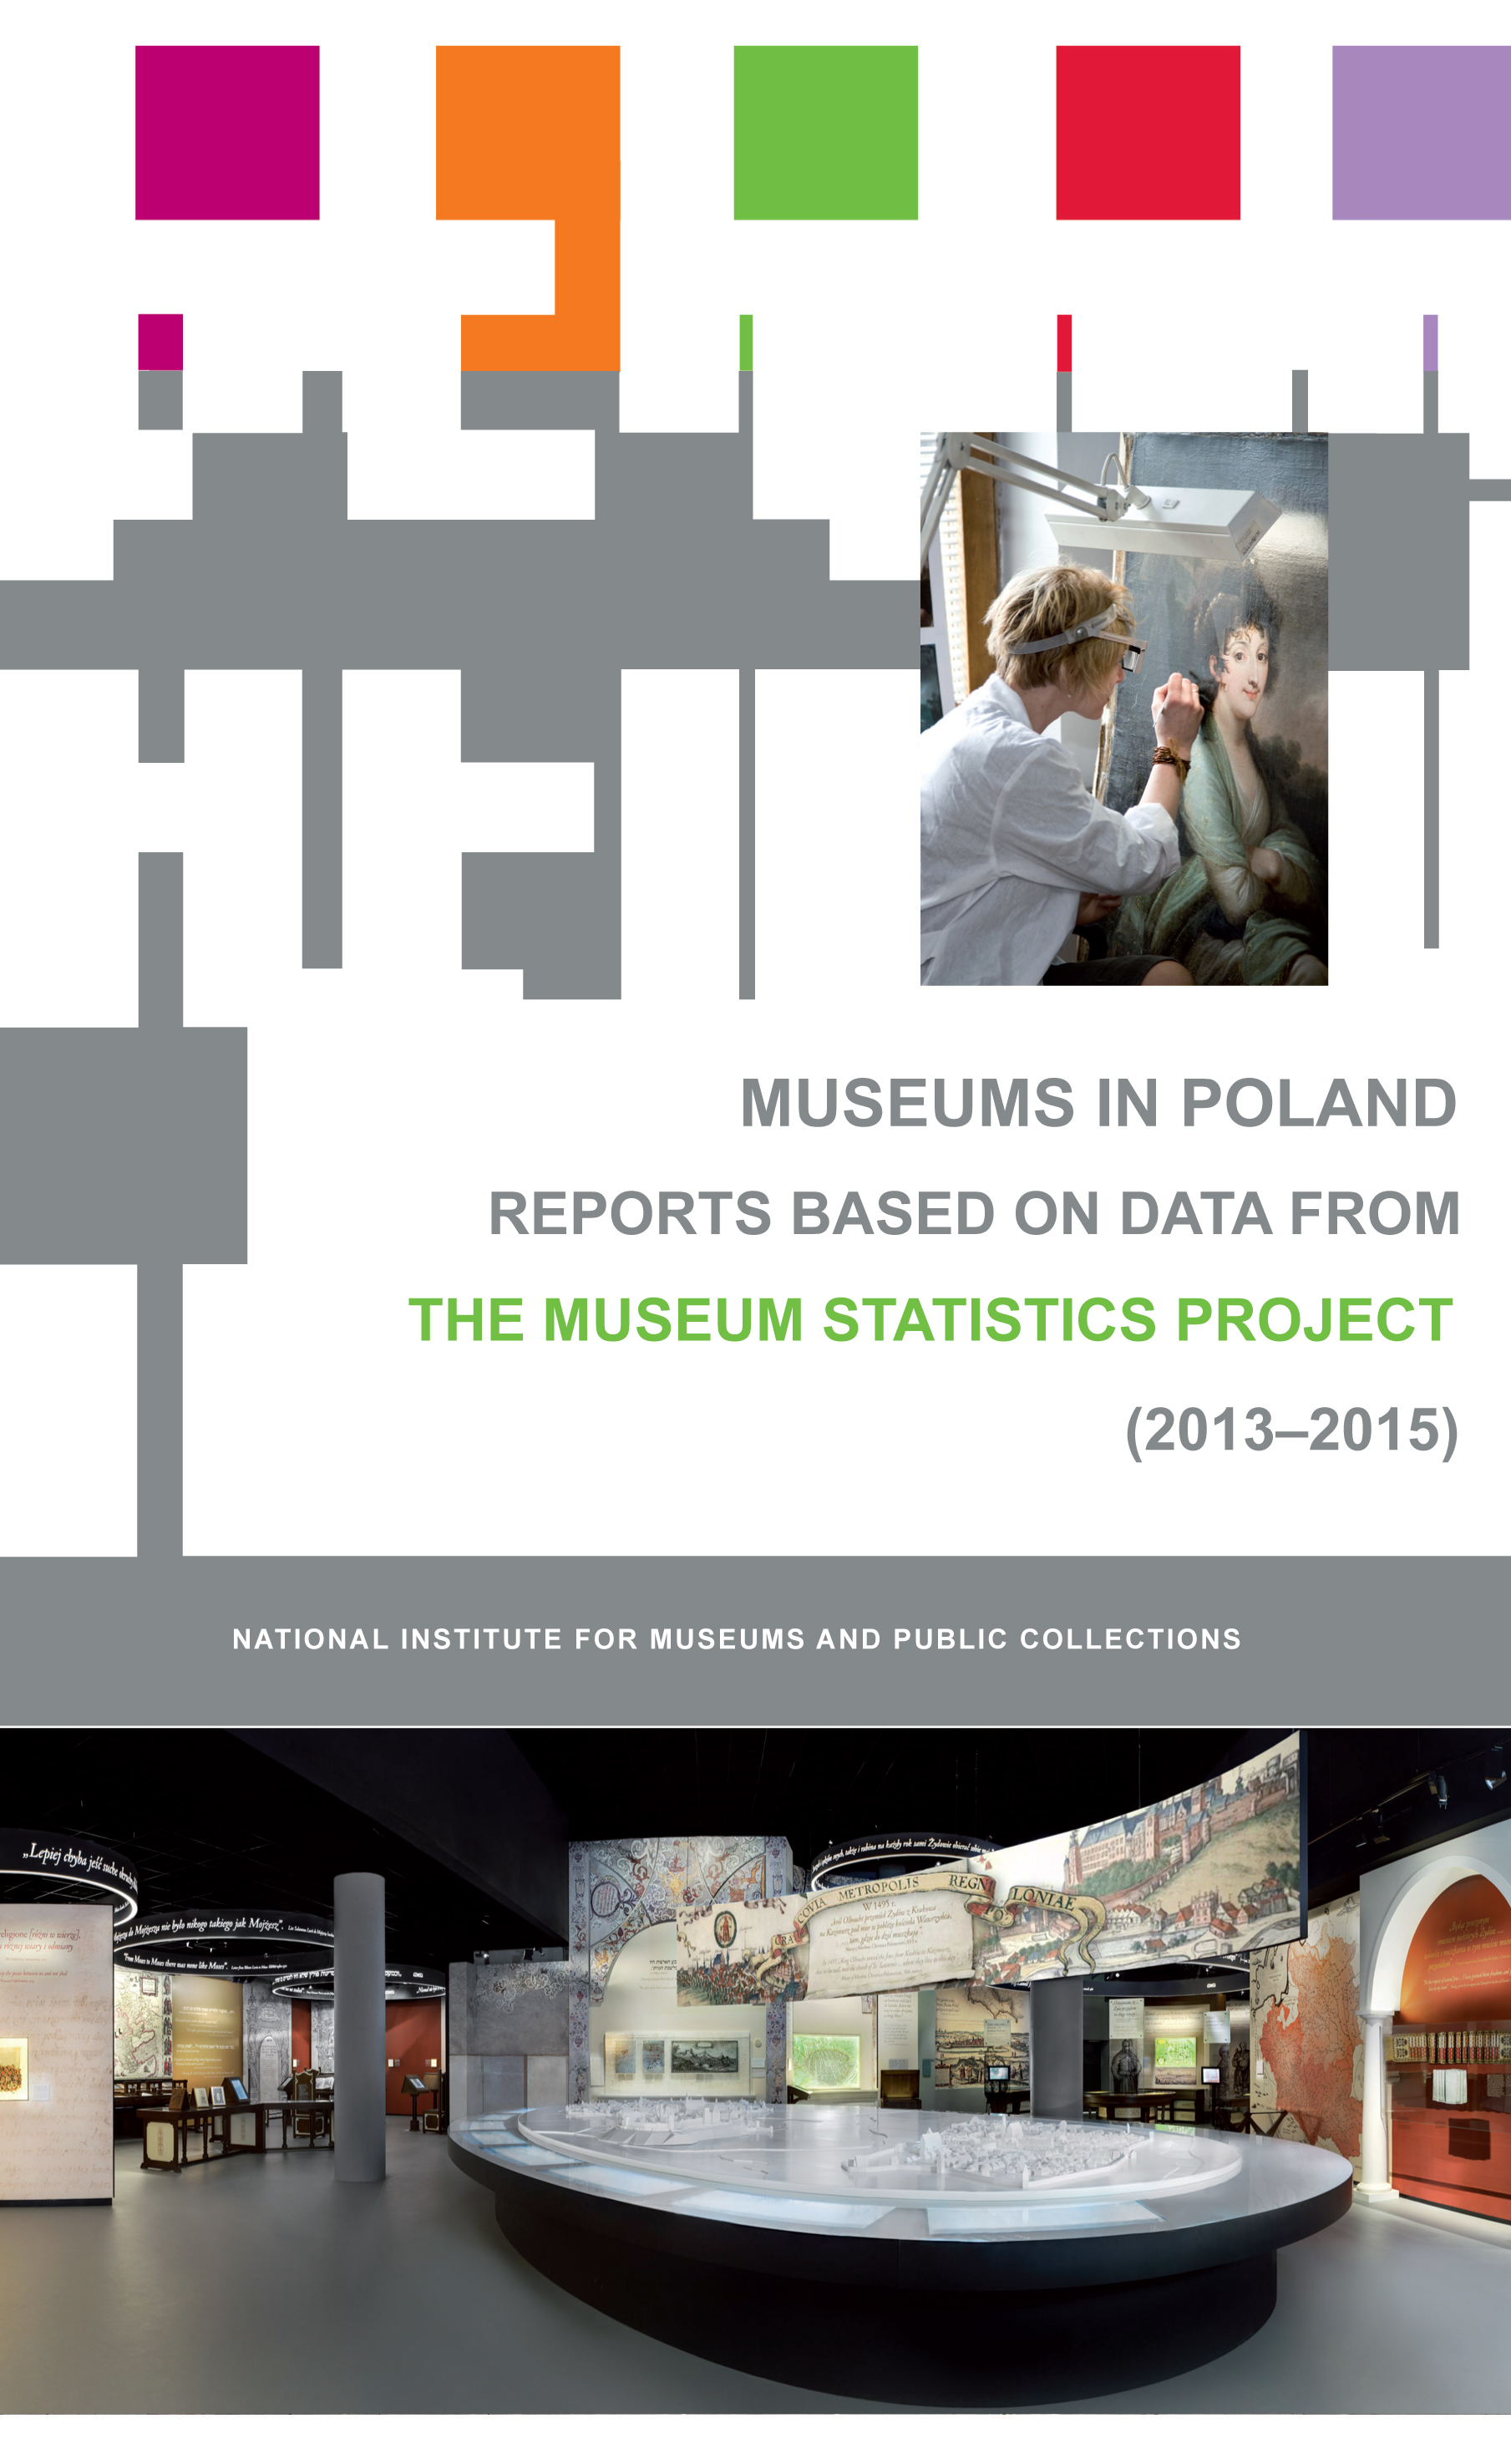 Museums in Poland. Reports based on data from the Museum Statistics Project (2013-2015)